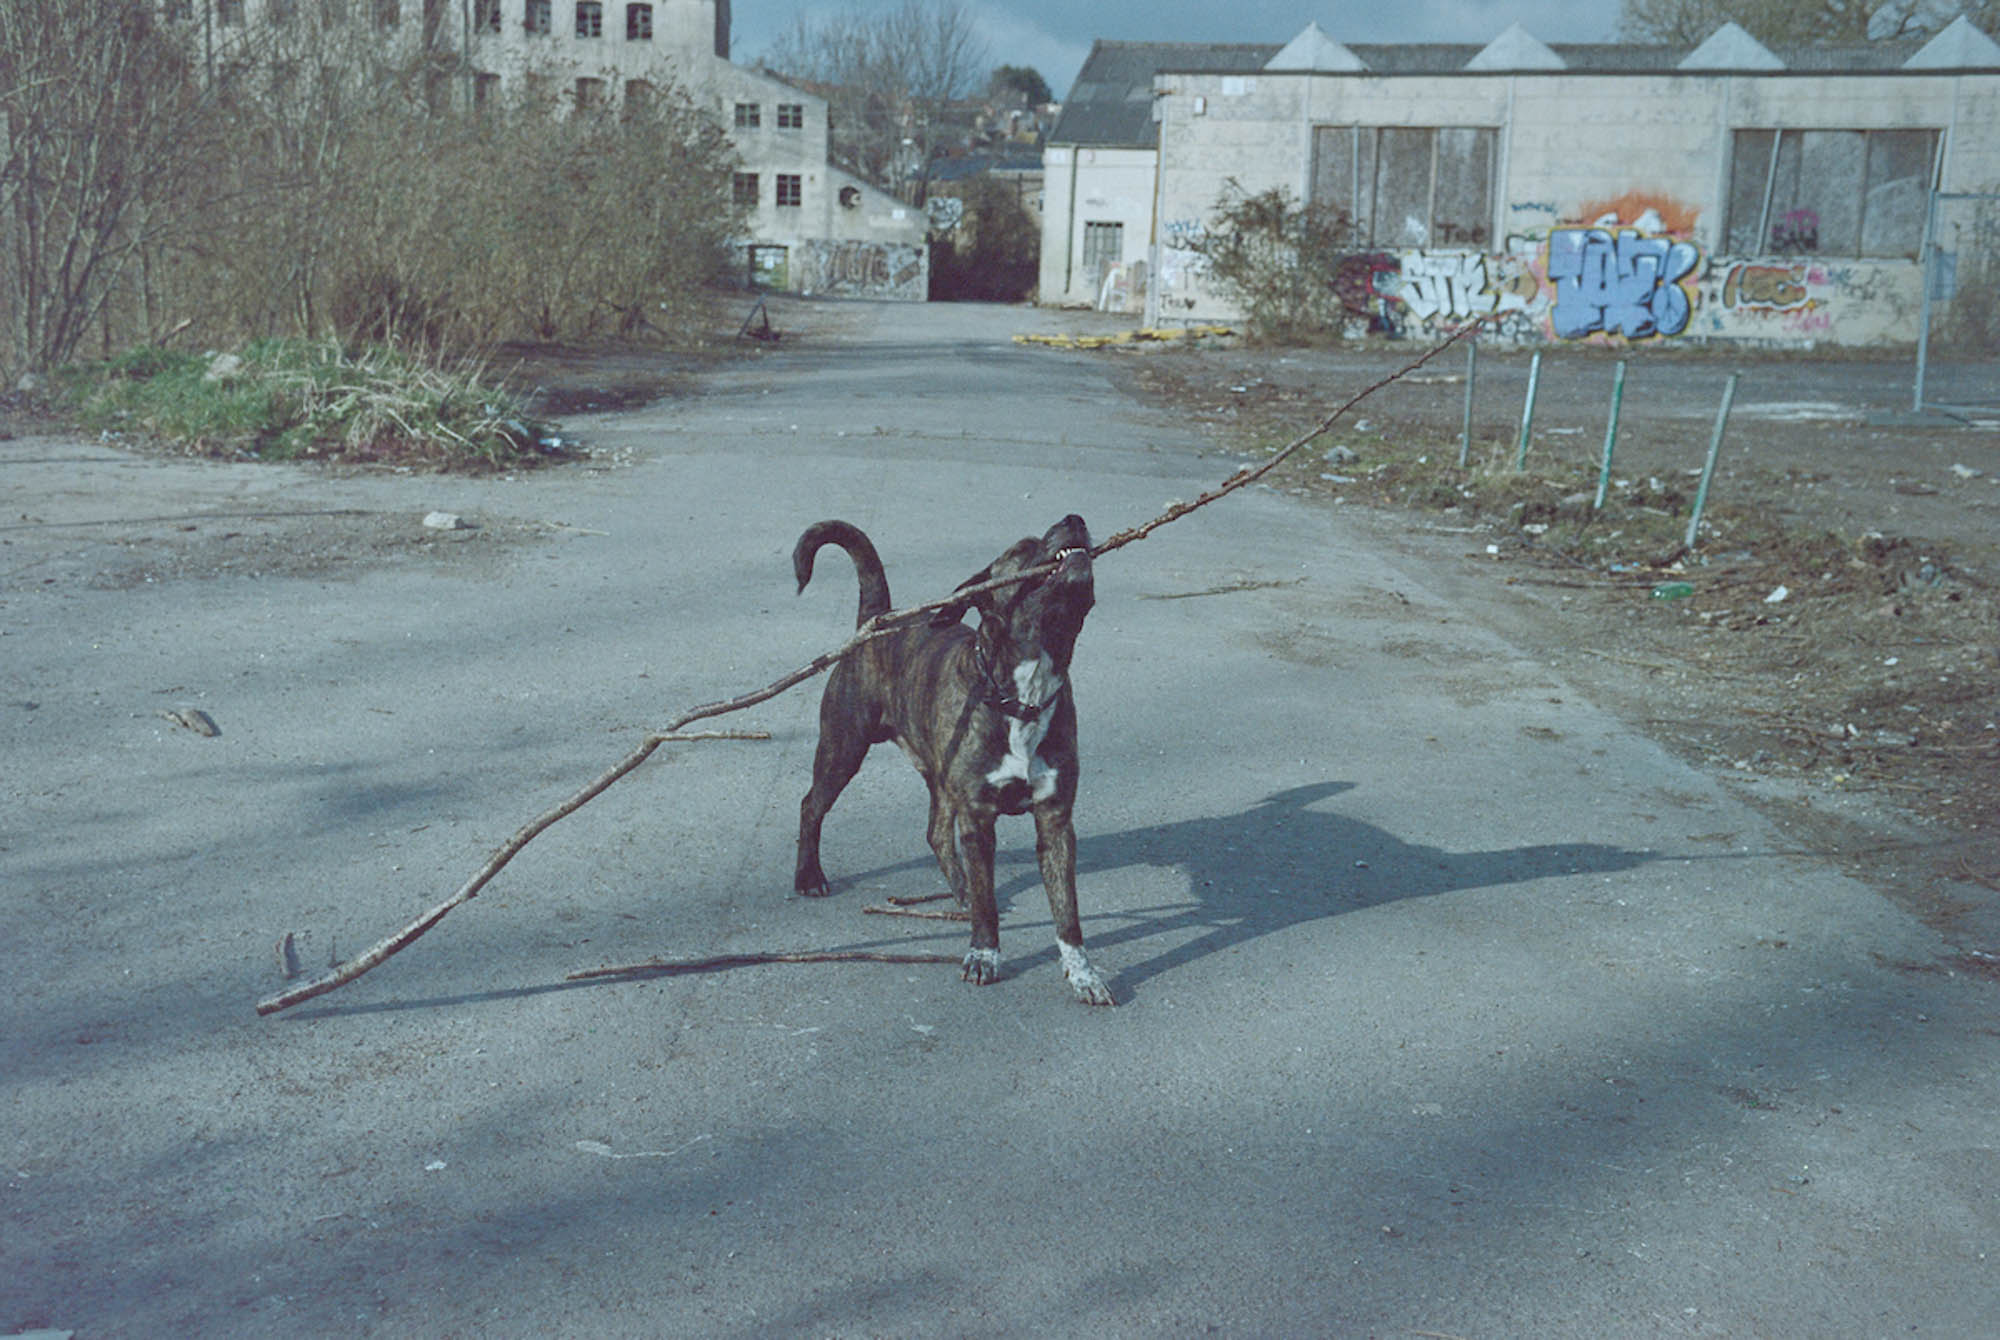 A dog belonging to one of the traveling residents plays with a stick on the morning of eviction. March 2018, Kodak Portra 160NC